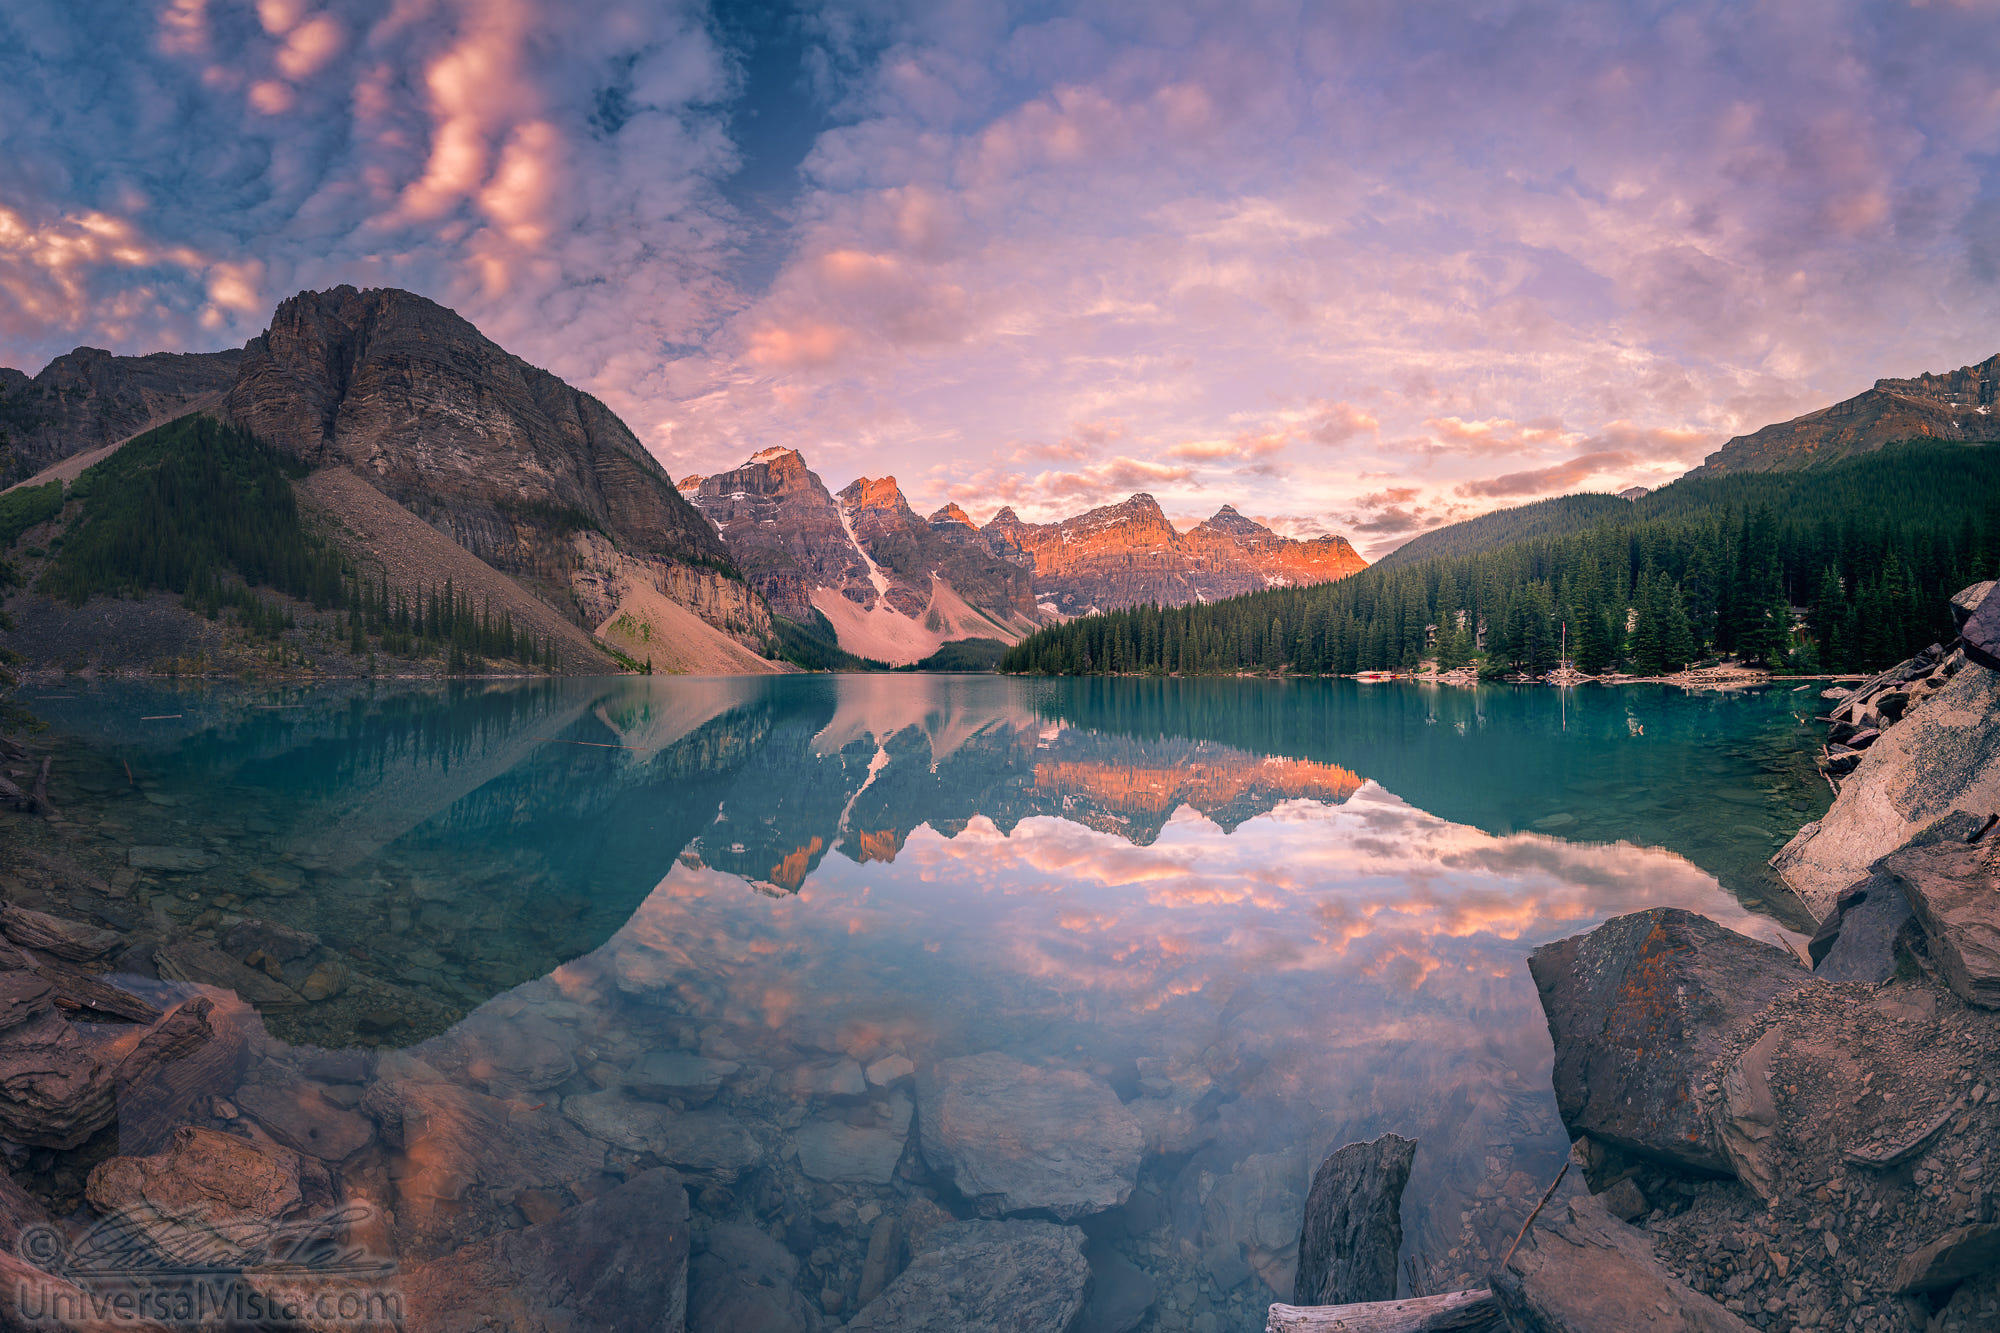 The Sunrise hour at Banff